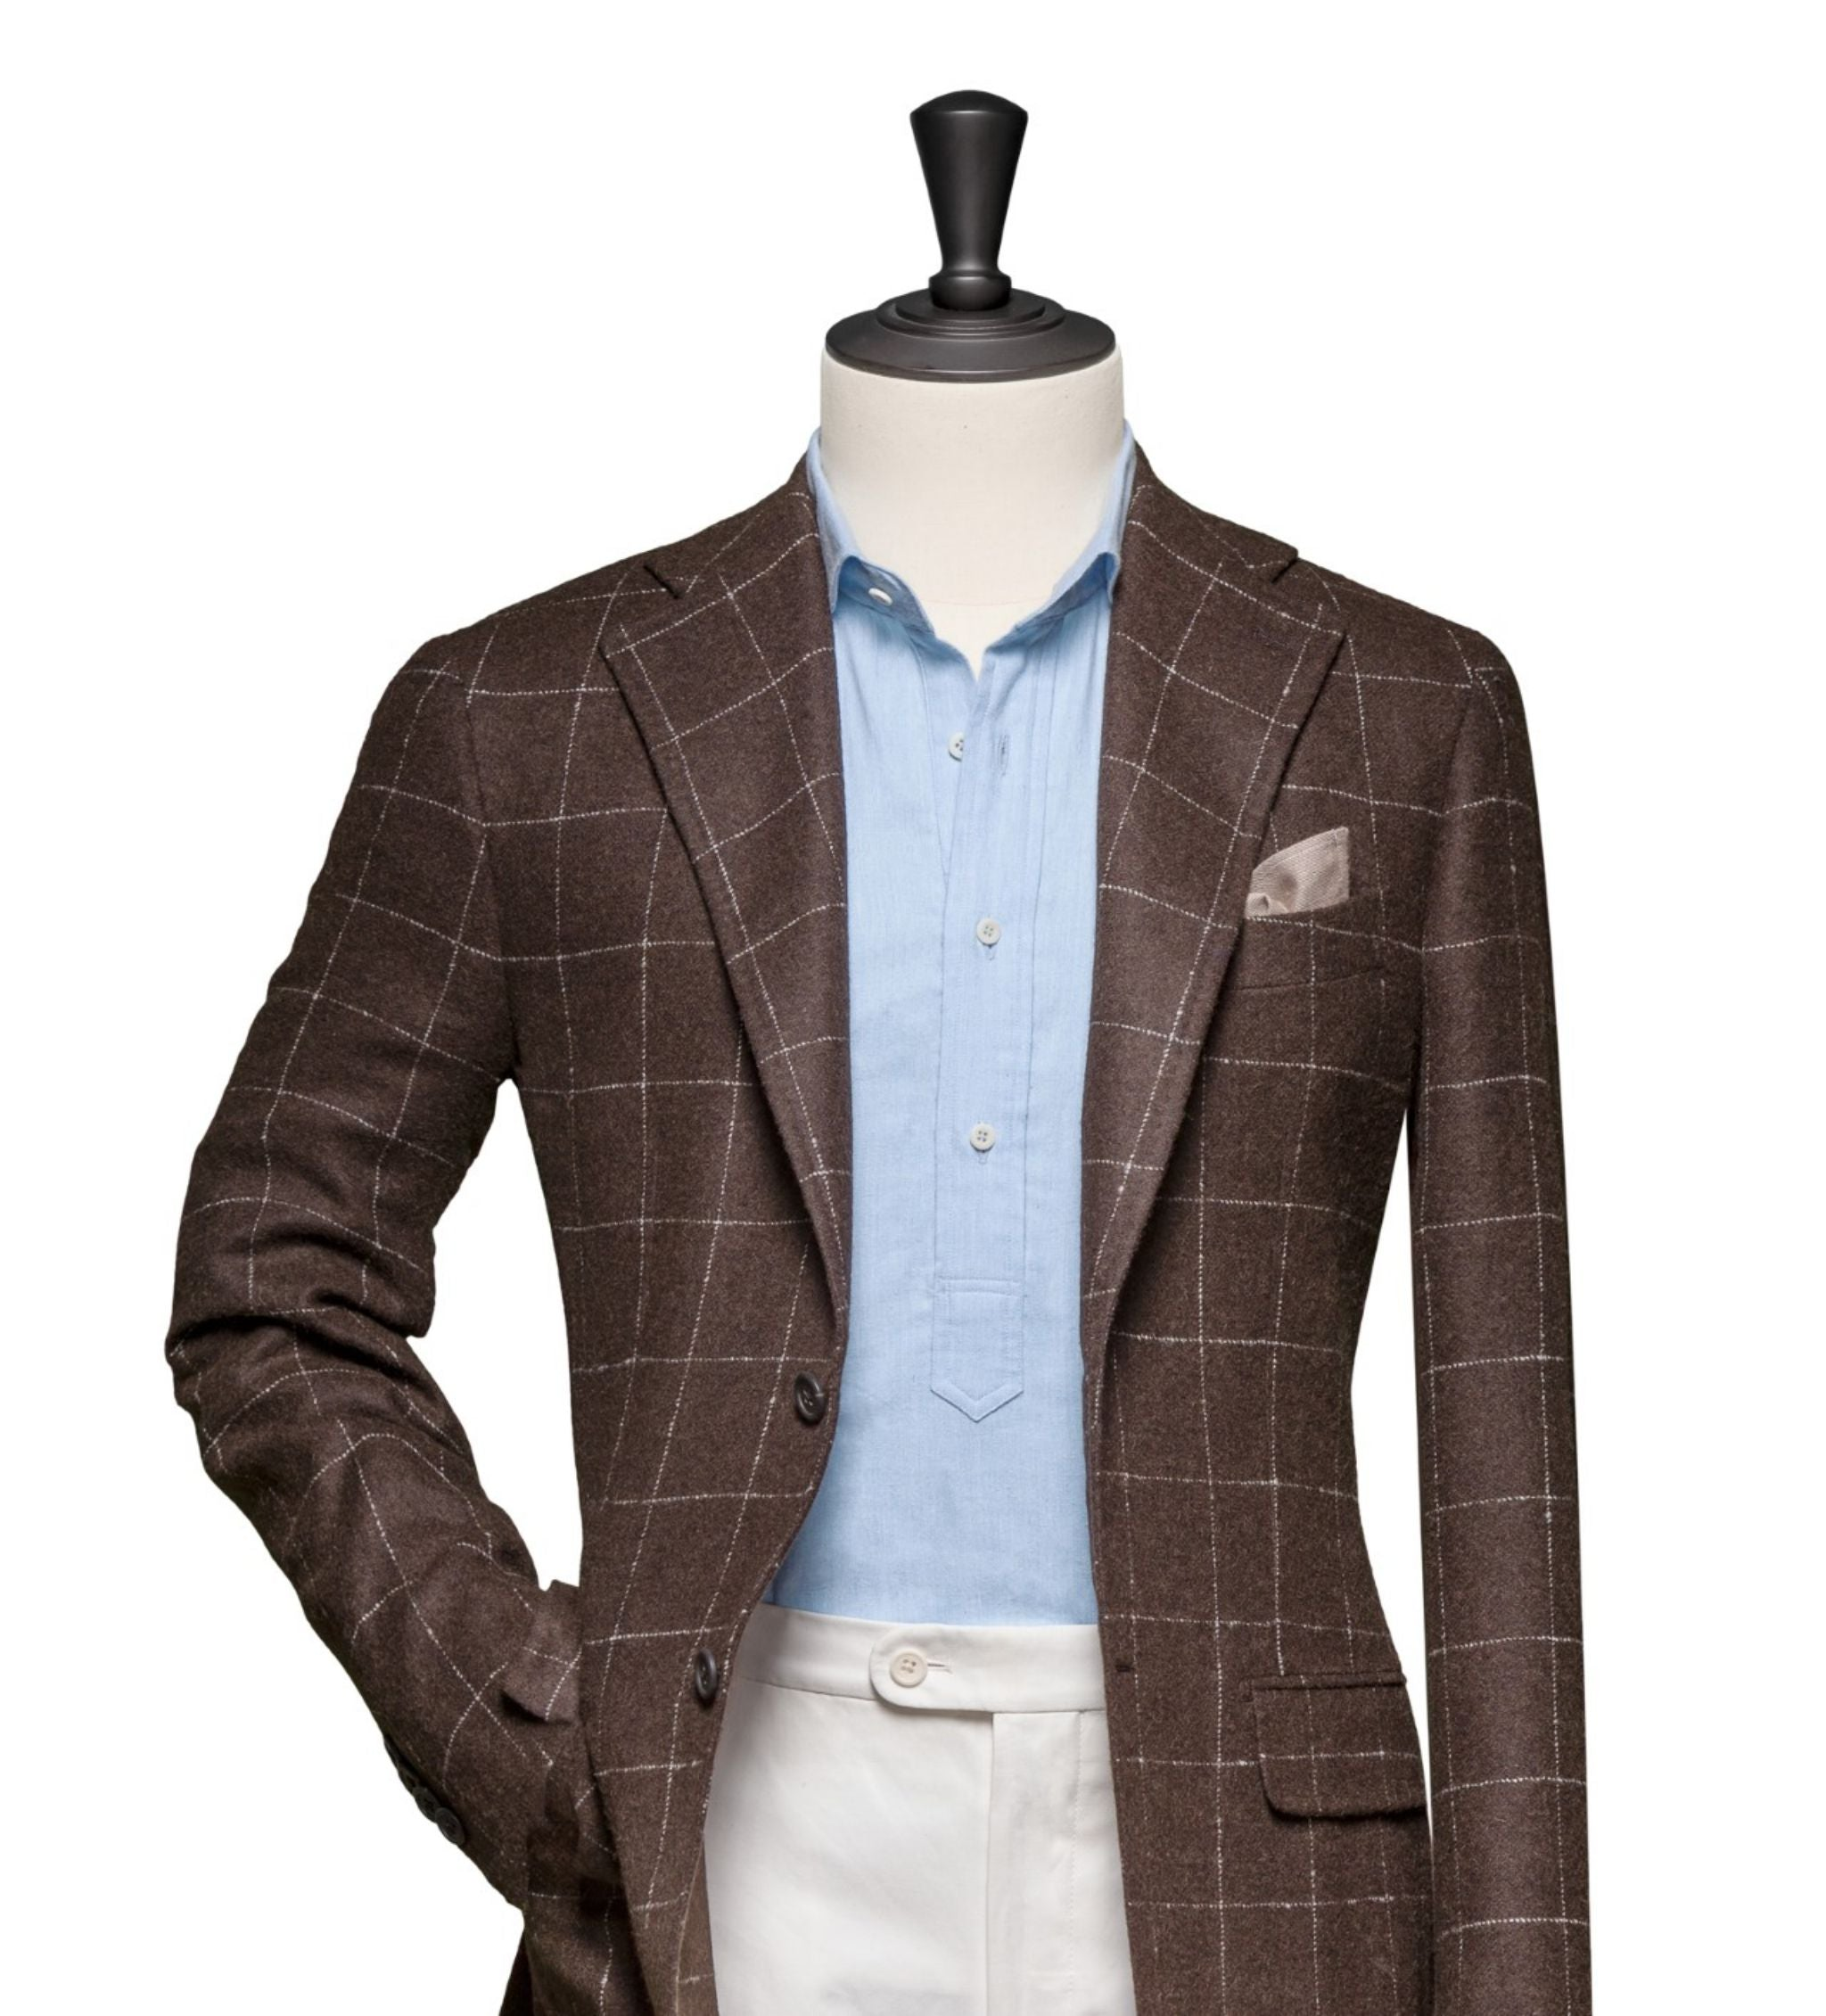 How to combine suits and sport coats - windowpane sport coat with light blue popover